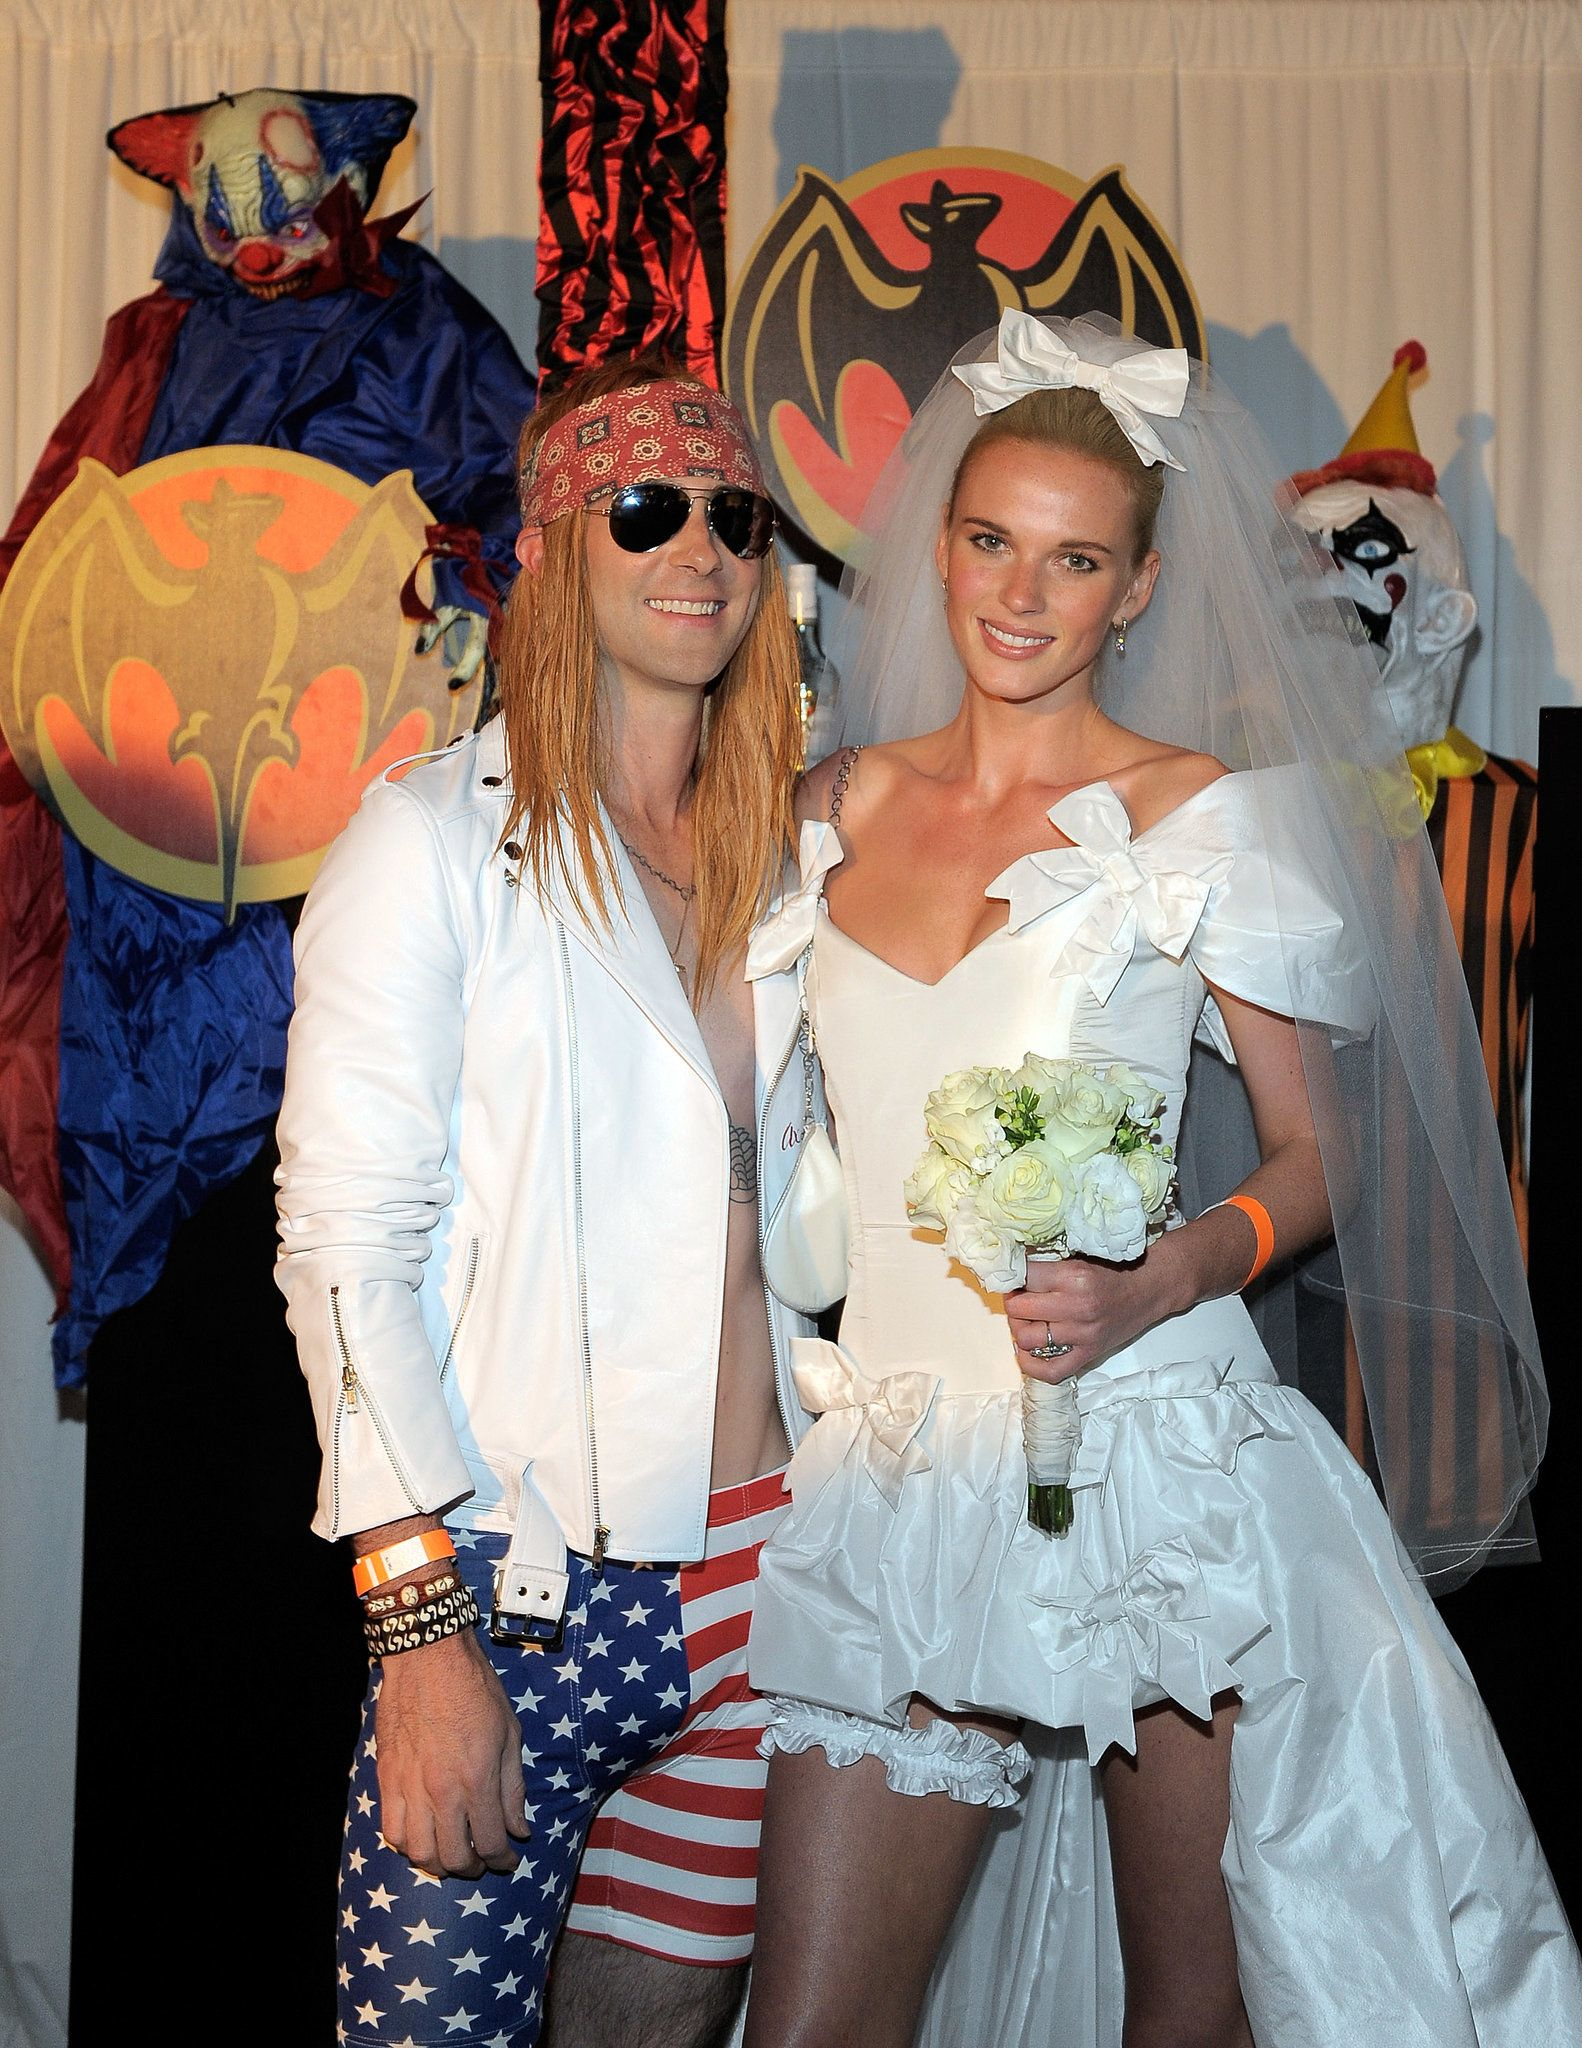 Adam Levine And Anne V As Axl Rose And Stephanie Seymour From November Rain Celebrity Halloween Costumes Celebrity Couple Costumes Celebrity Costumes